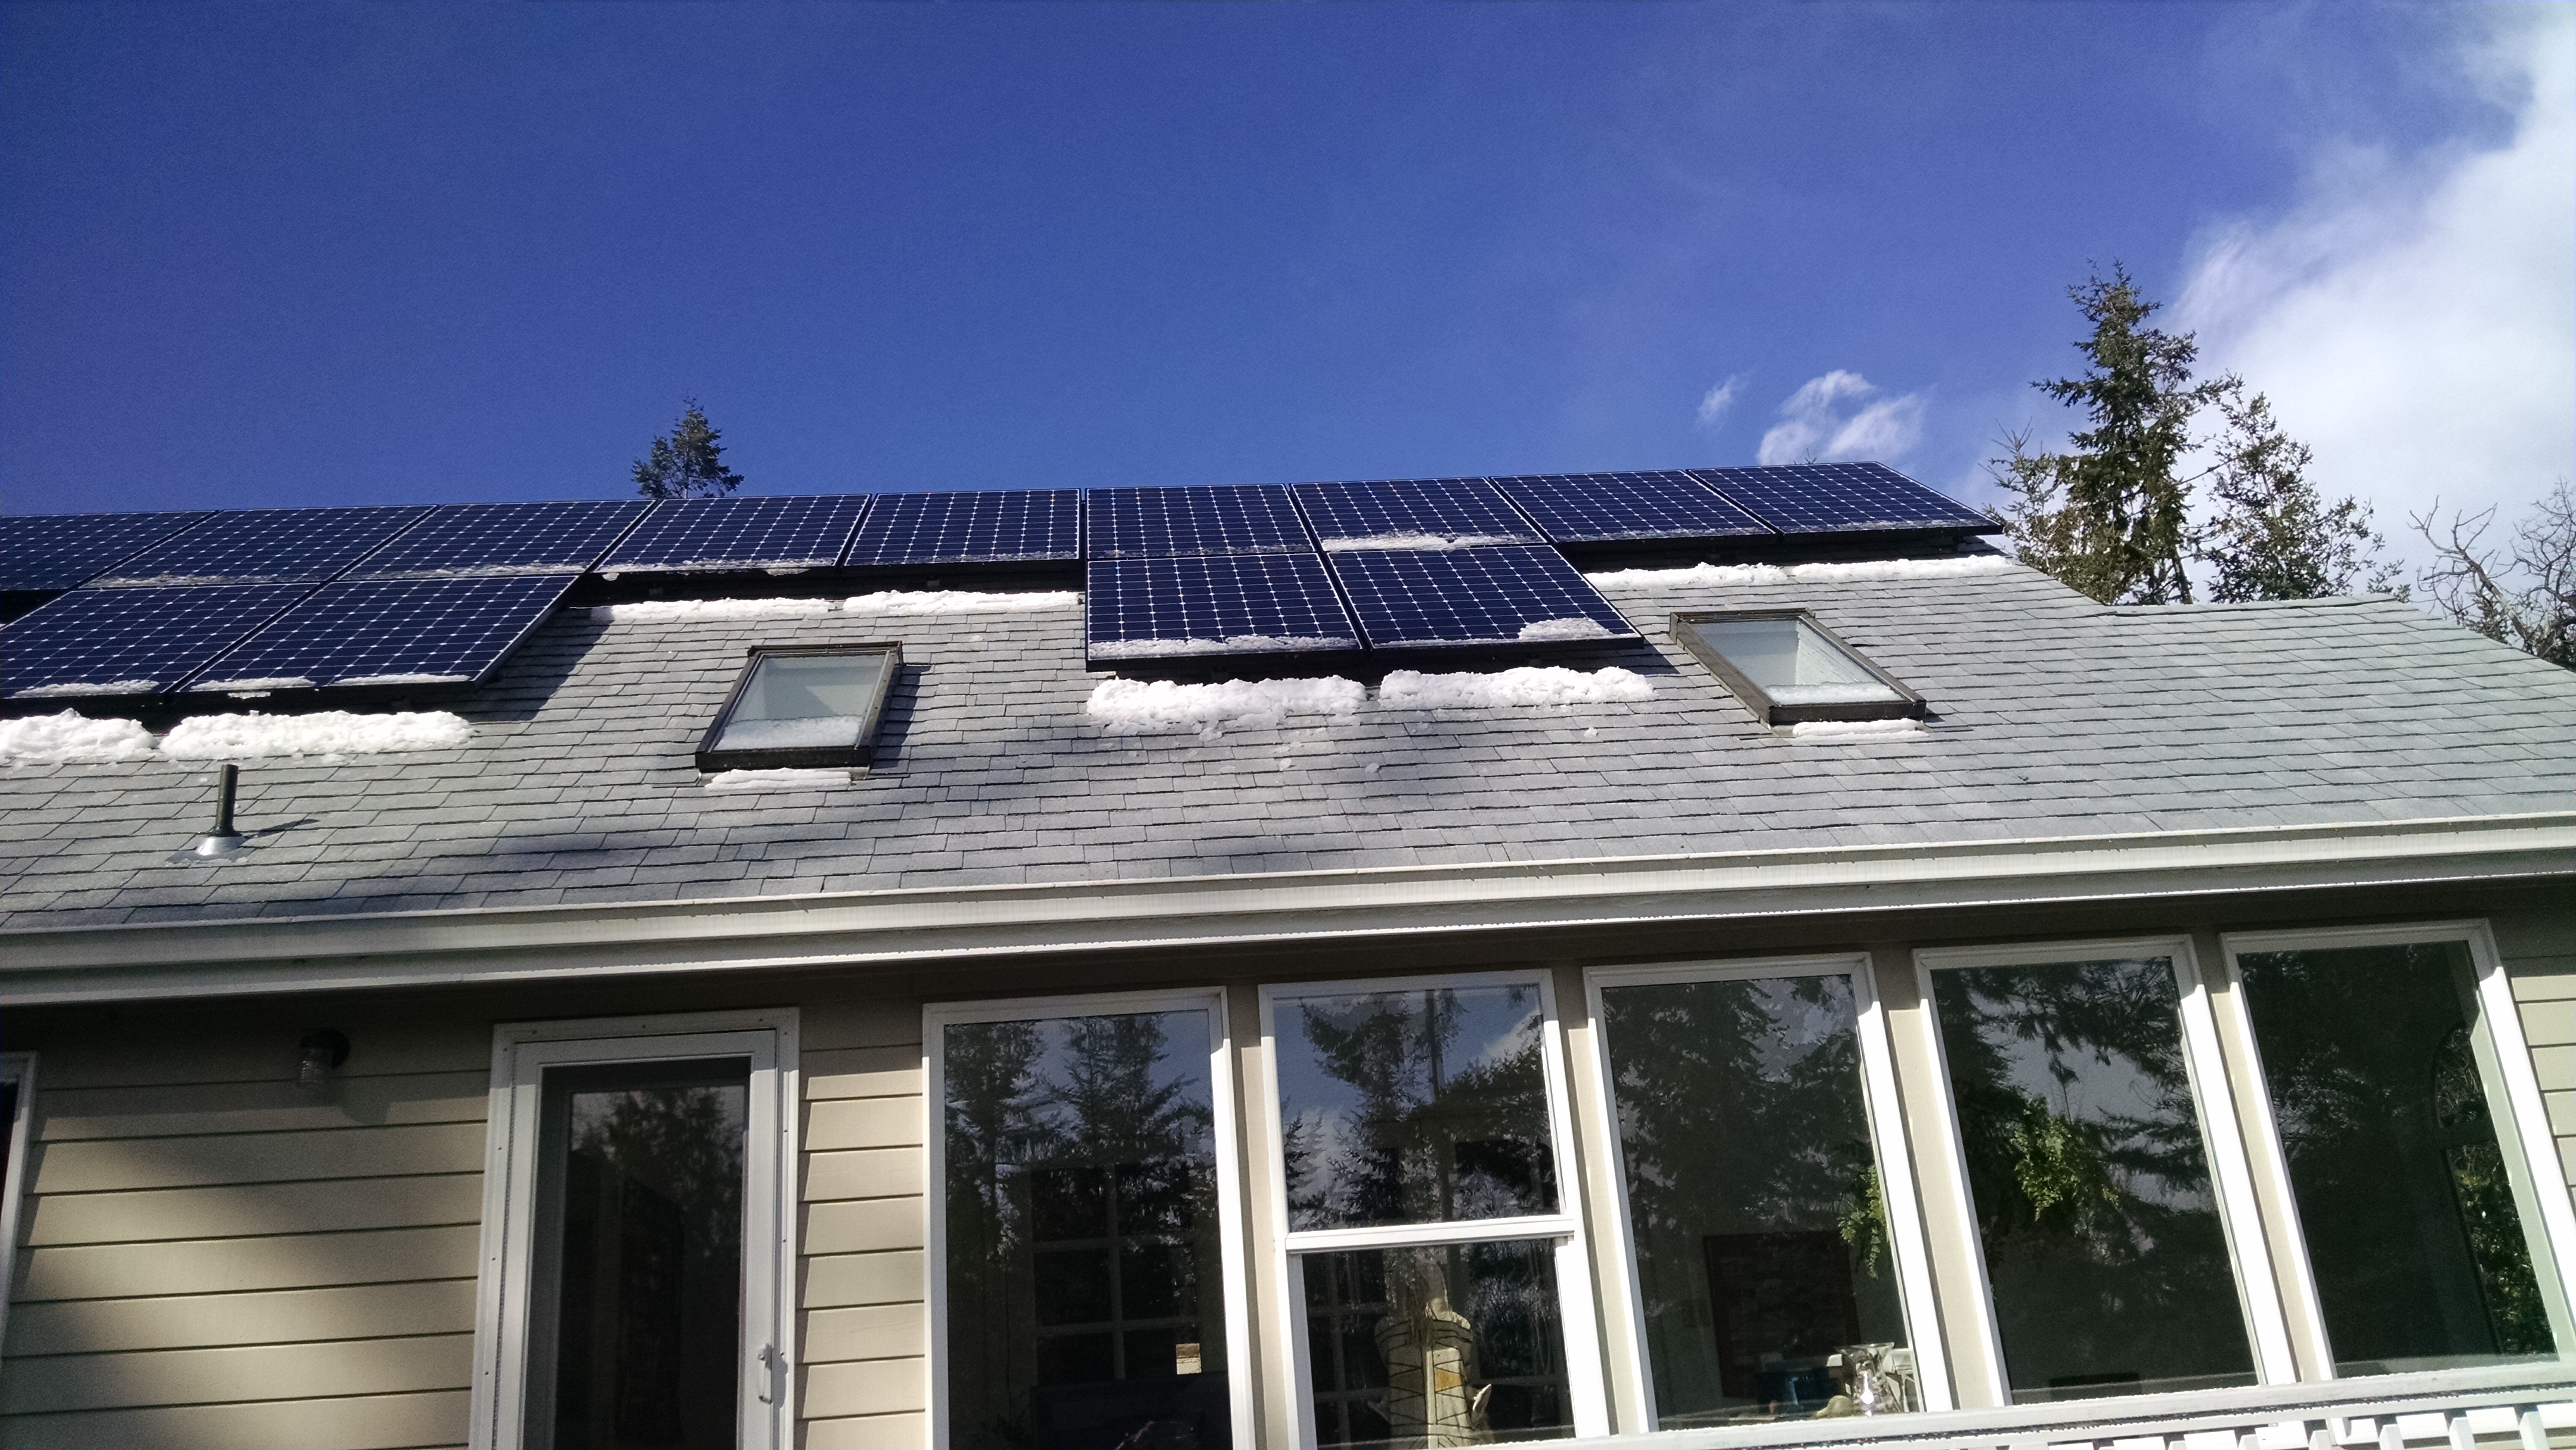 Residence, 7.85 KW, Port Townsend, 2017